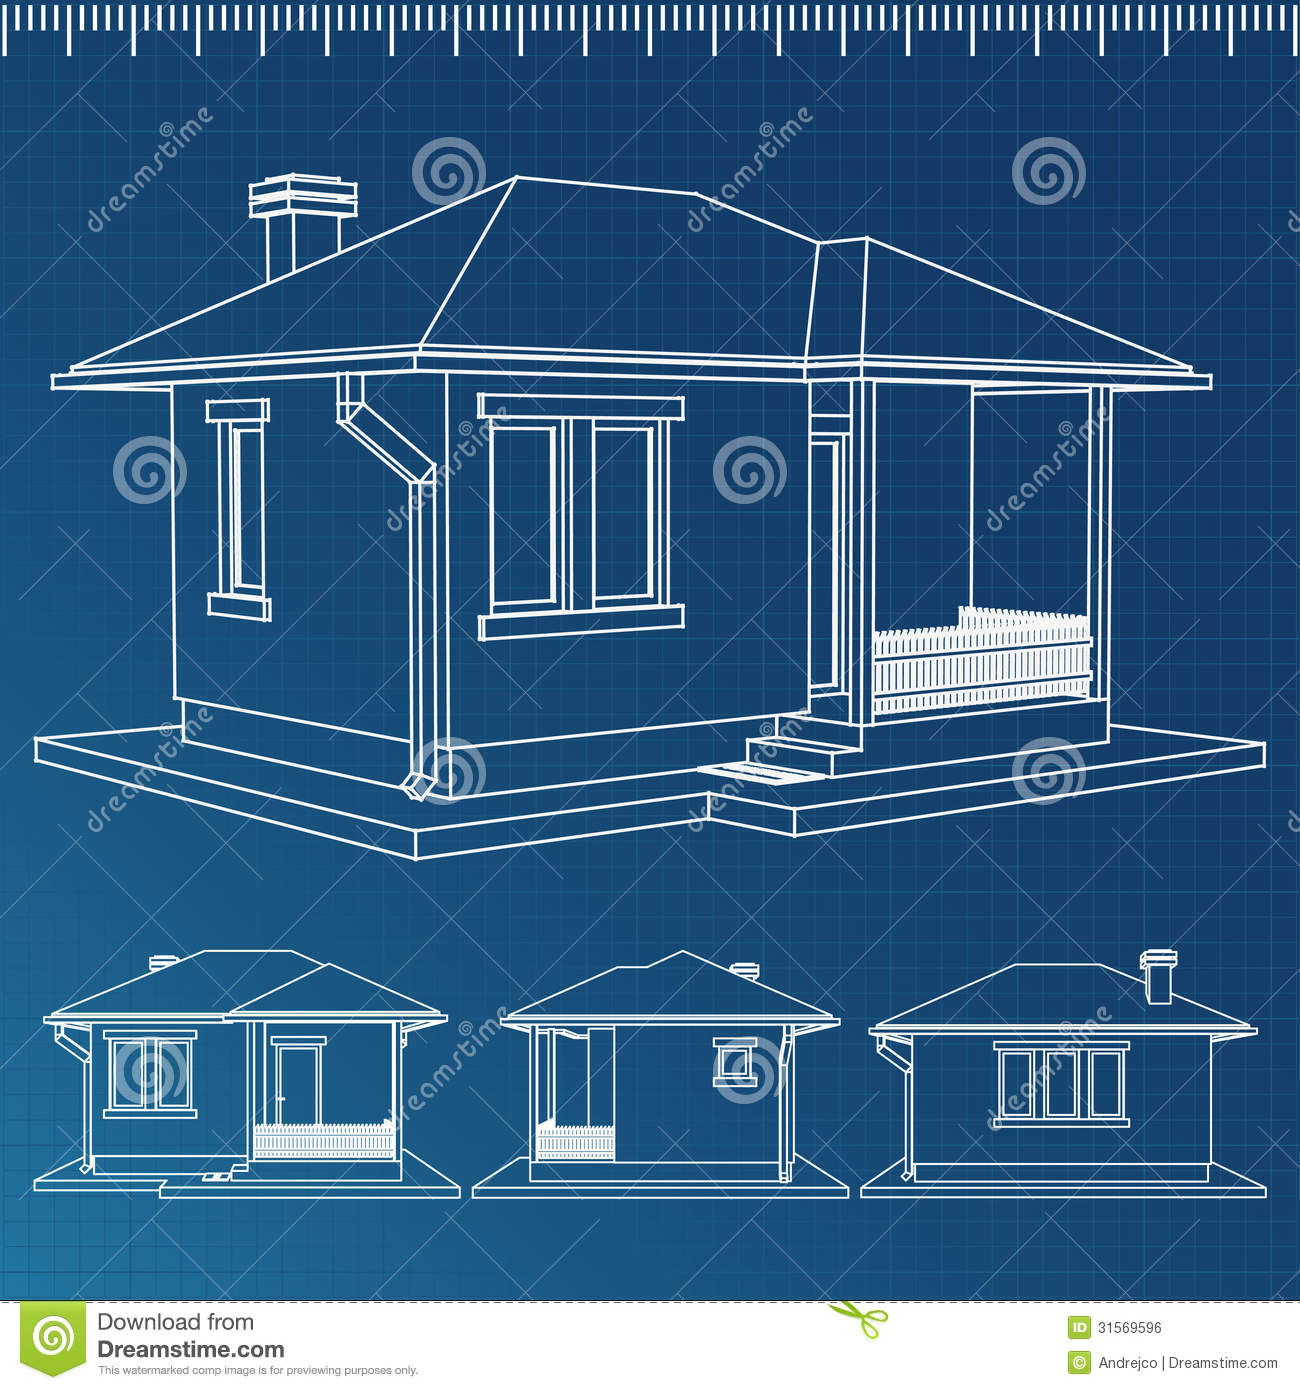 House blueprint royalty free stock image image 31569596 for Blueprint homes